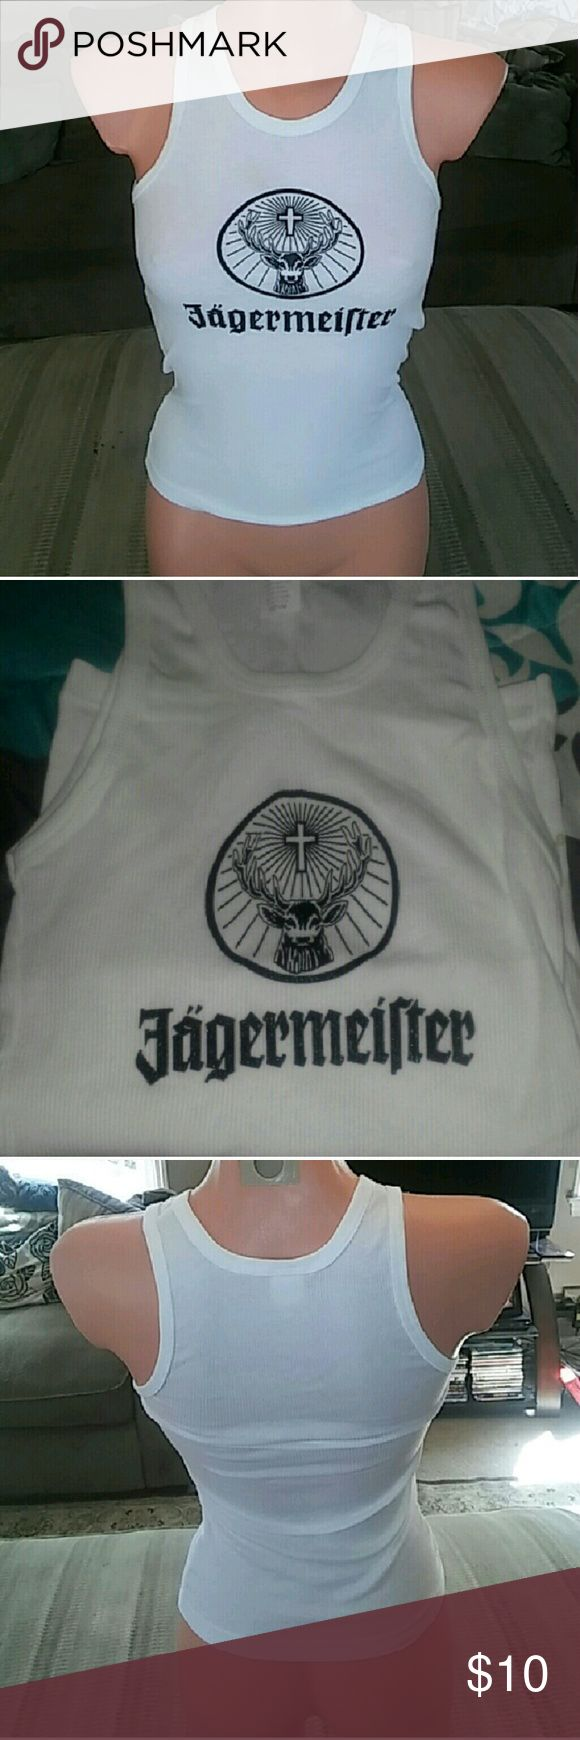 Jagermeister Tank Tops Brand new. Size Medium and XL available!! Please note the size you want and price is for one top only. NOT F21. Just branded for exposure. Forever 21 Tops Tank Tops